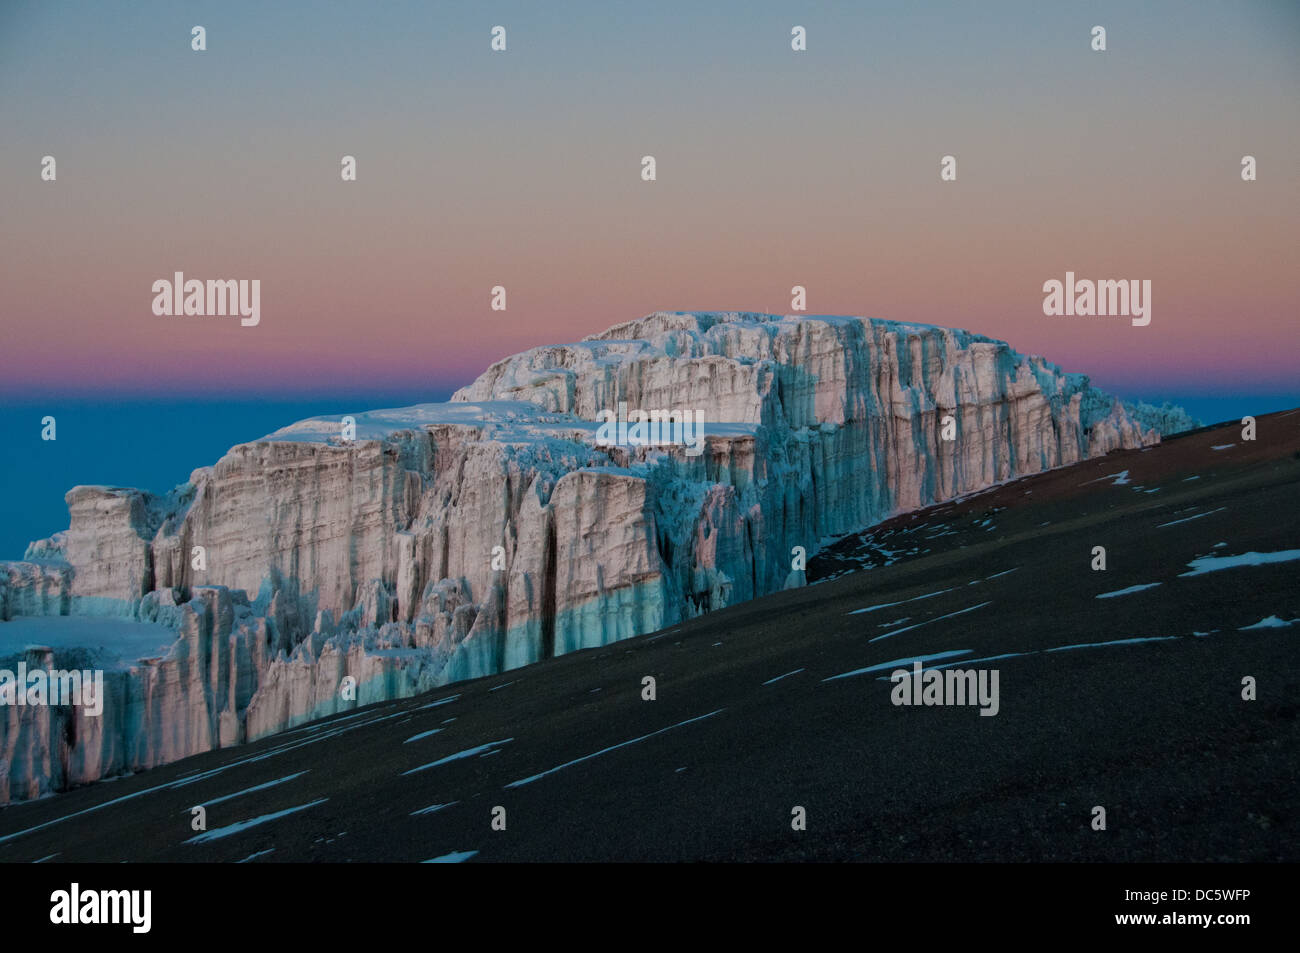 The early morning sun beginning to appear on the glaciers on the crater rim of Kilimanjaro - Stock Image